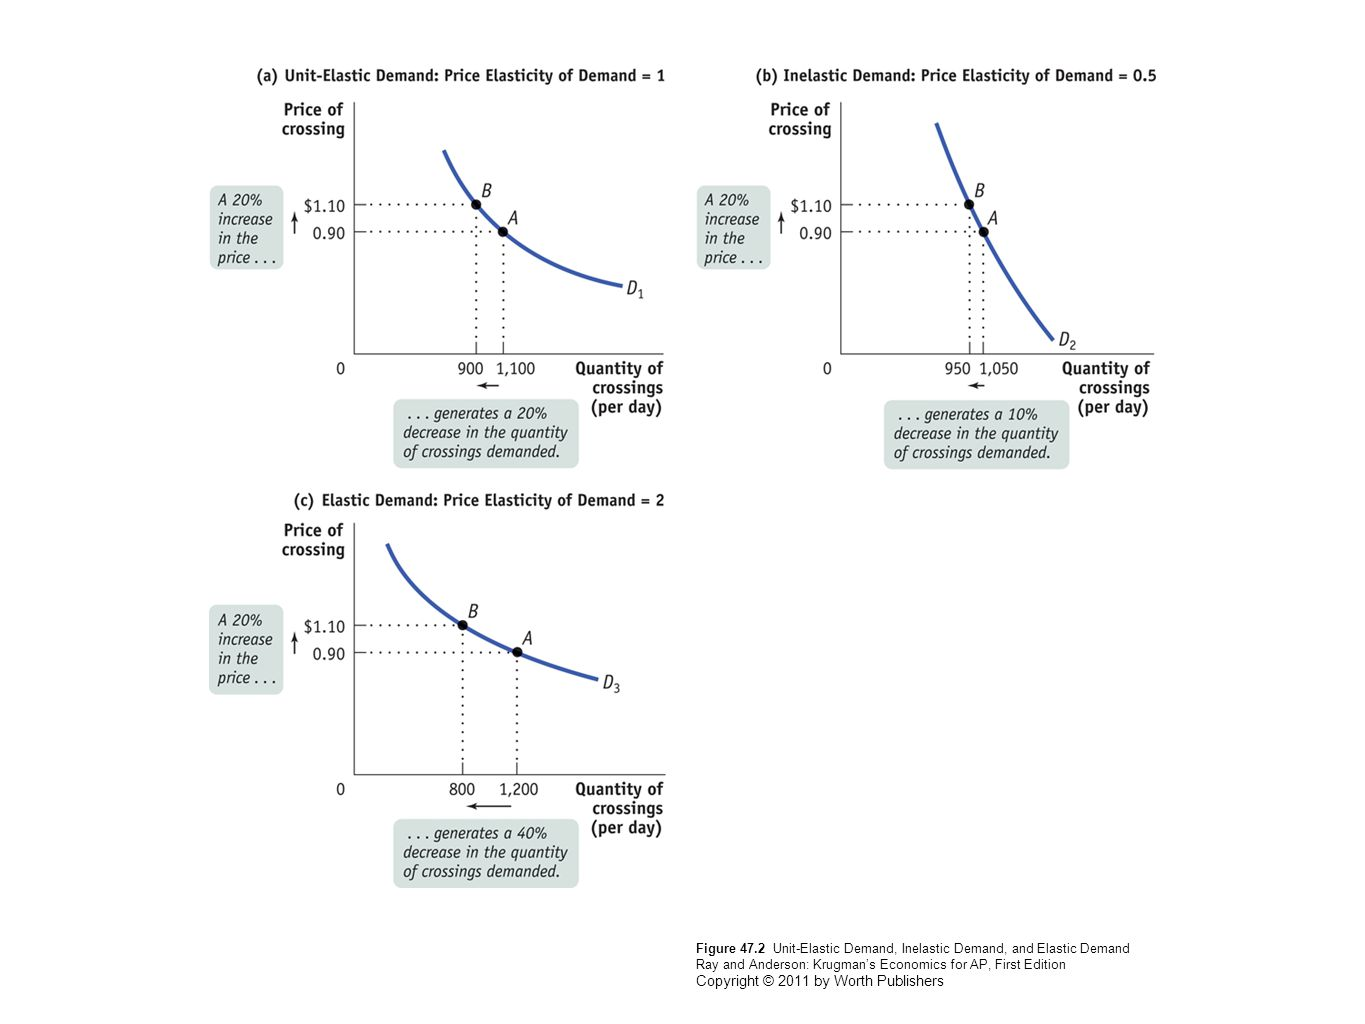 Figure 47.2 Unit-Elastic Demand, Inelastic Demand, and Elastic Demand Ray and Anderson: Krugman's Economics for AP, First Edition Copyright © 2011 by Worth Publishers